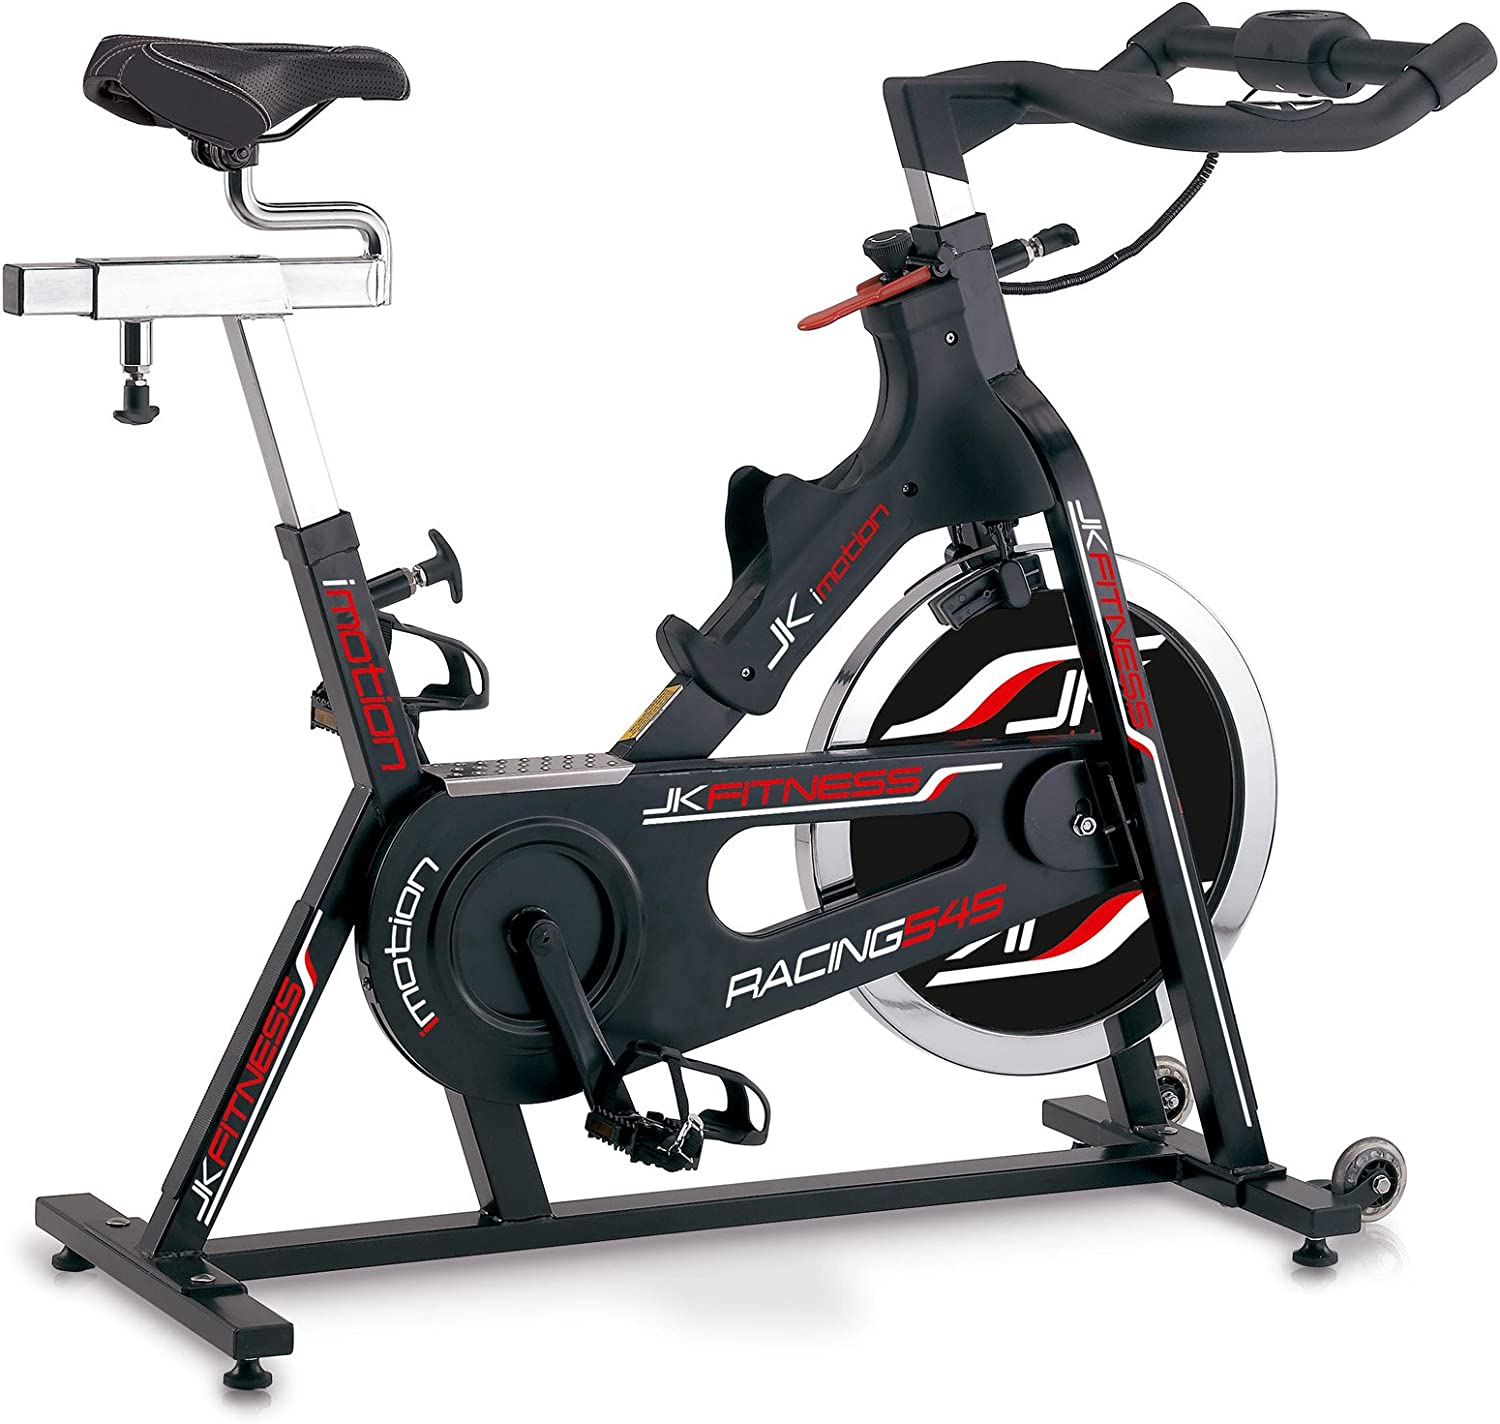 Jk Fitness jk545 Indoor Cycle, Negro: Amazon.es: Deportes y aire libre